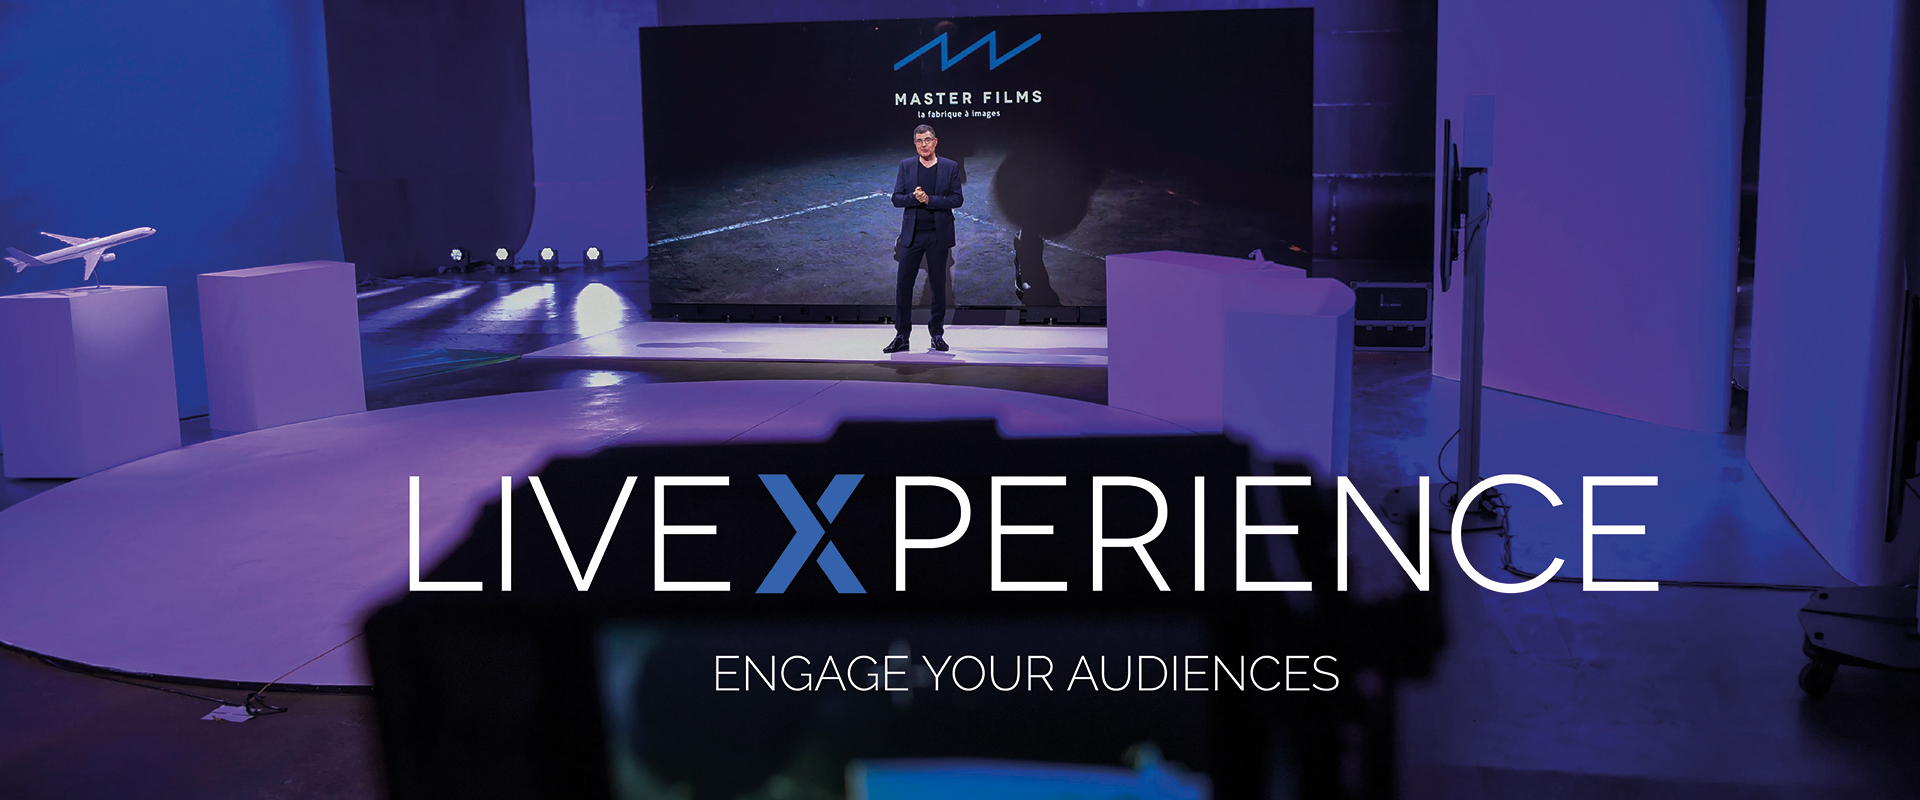 LIVE XPERIENCE - ENGAGER VOTRE AUDIENCE